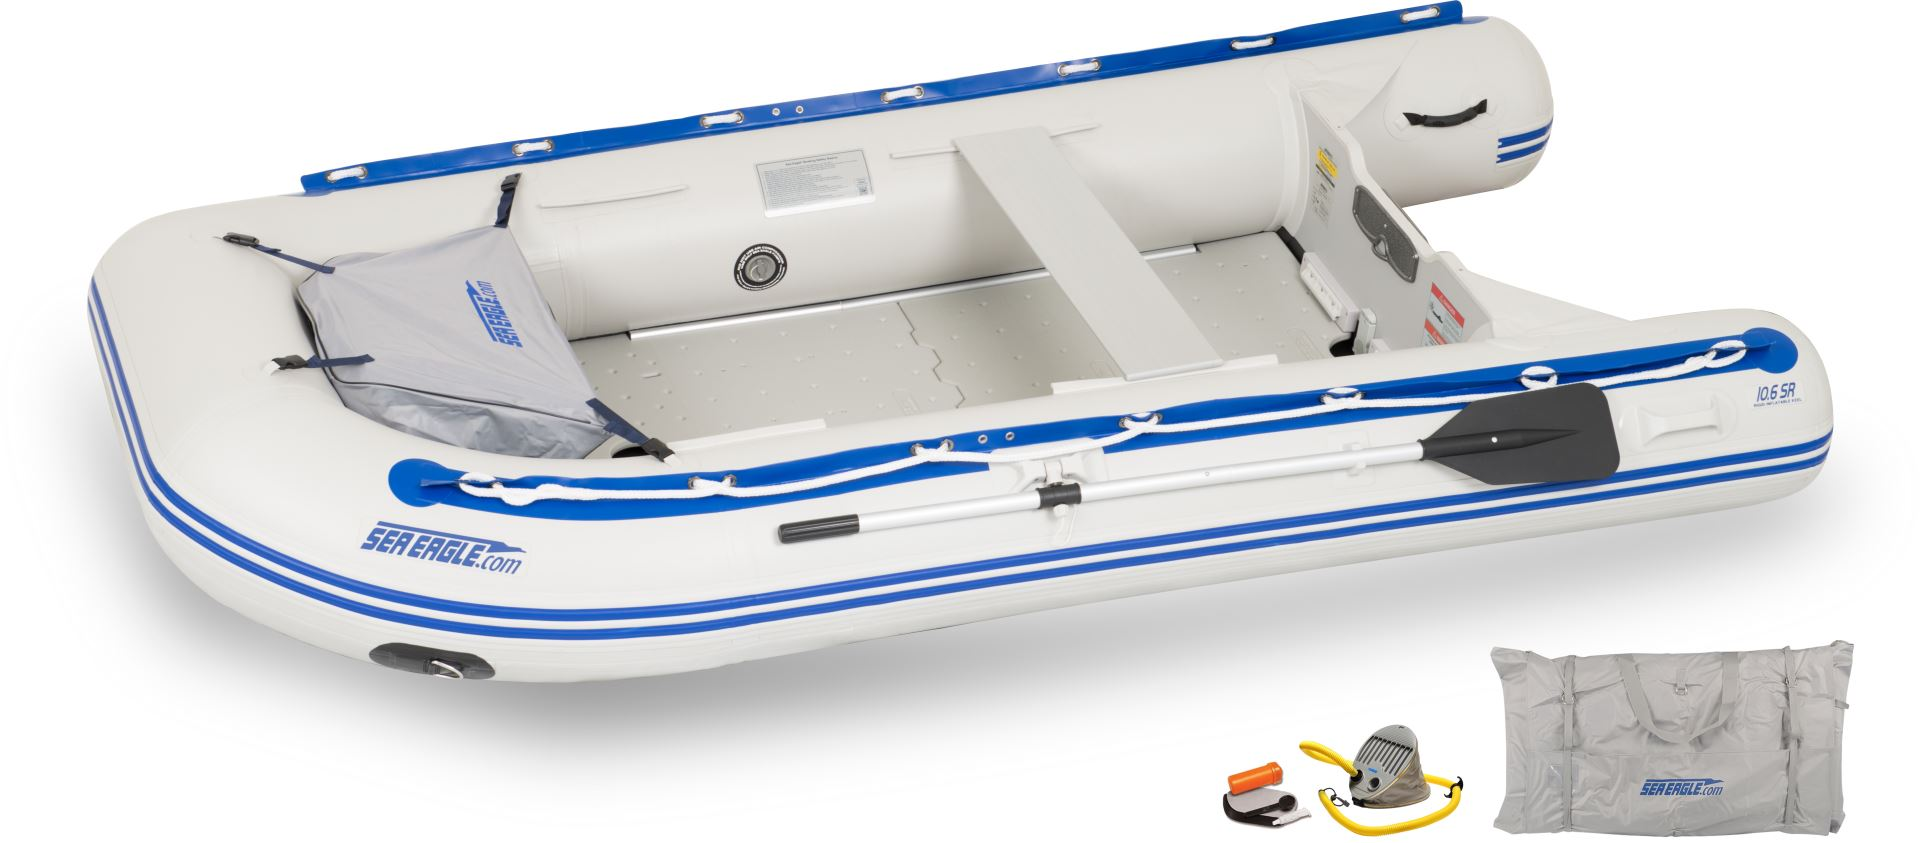 deluxe sea eagle inflatable raft sport runabout